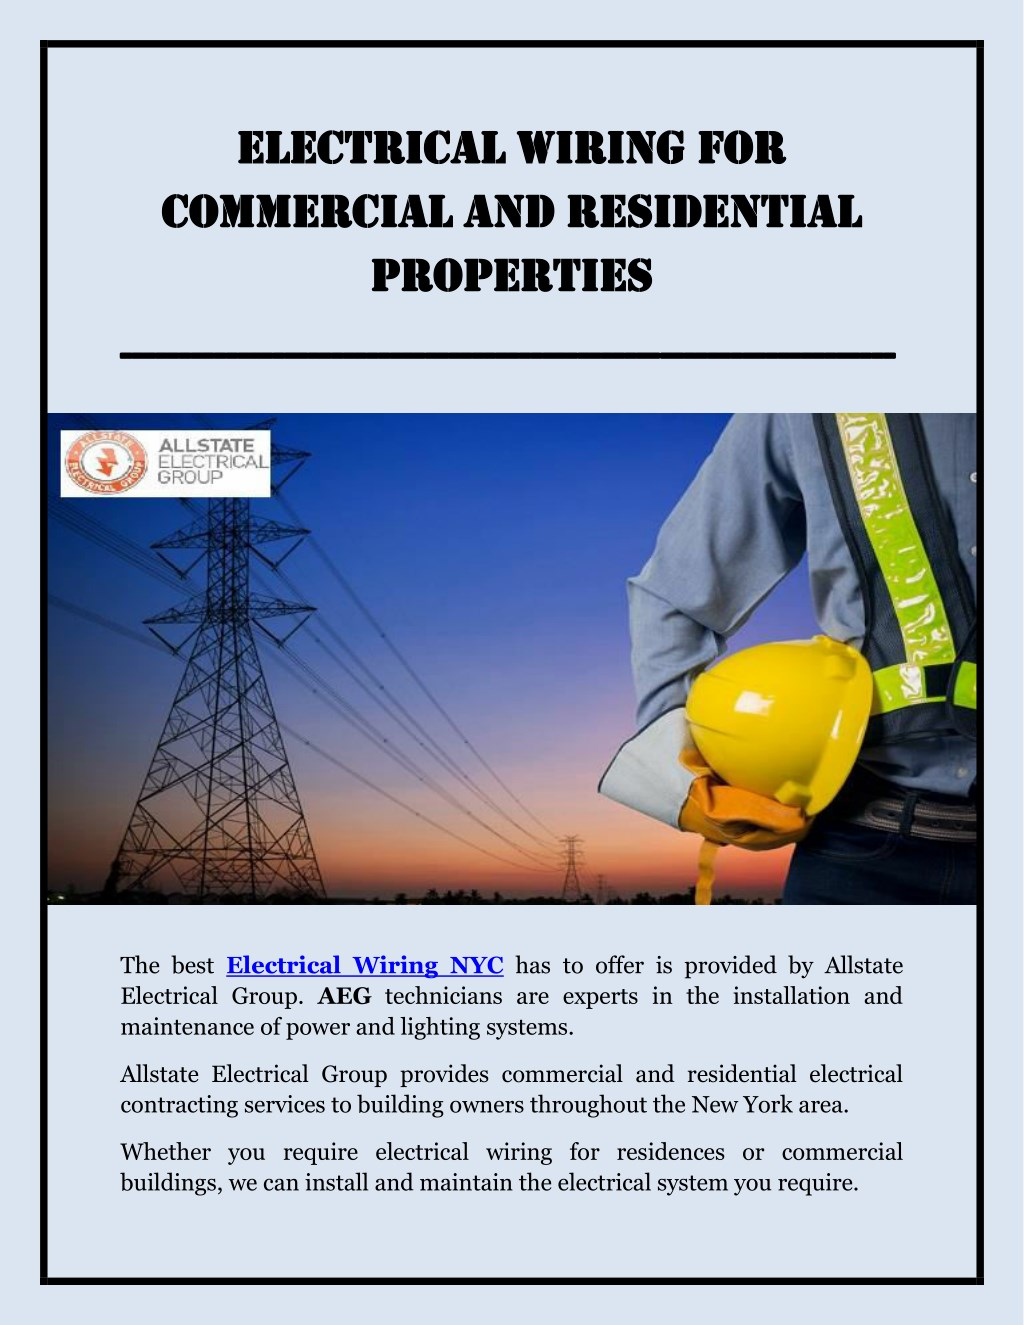 Ppt Licensed Electrician Nyc Powerpoint Presentation Id7775136 Wiring A Commercial Building El Elec Ectr Mme Erc N